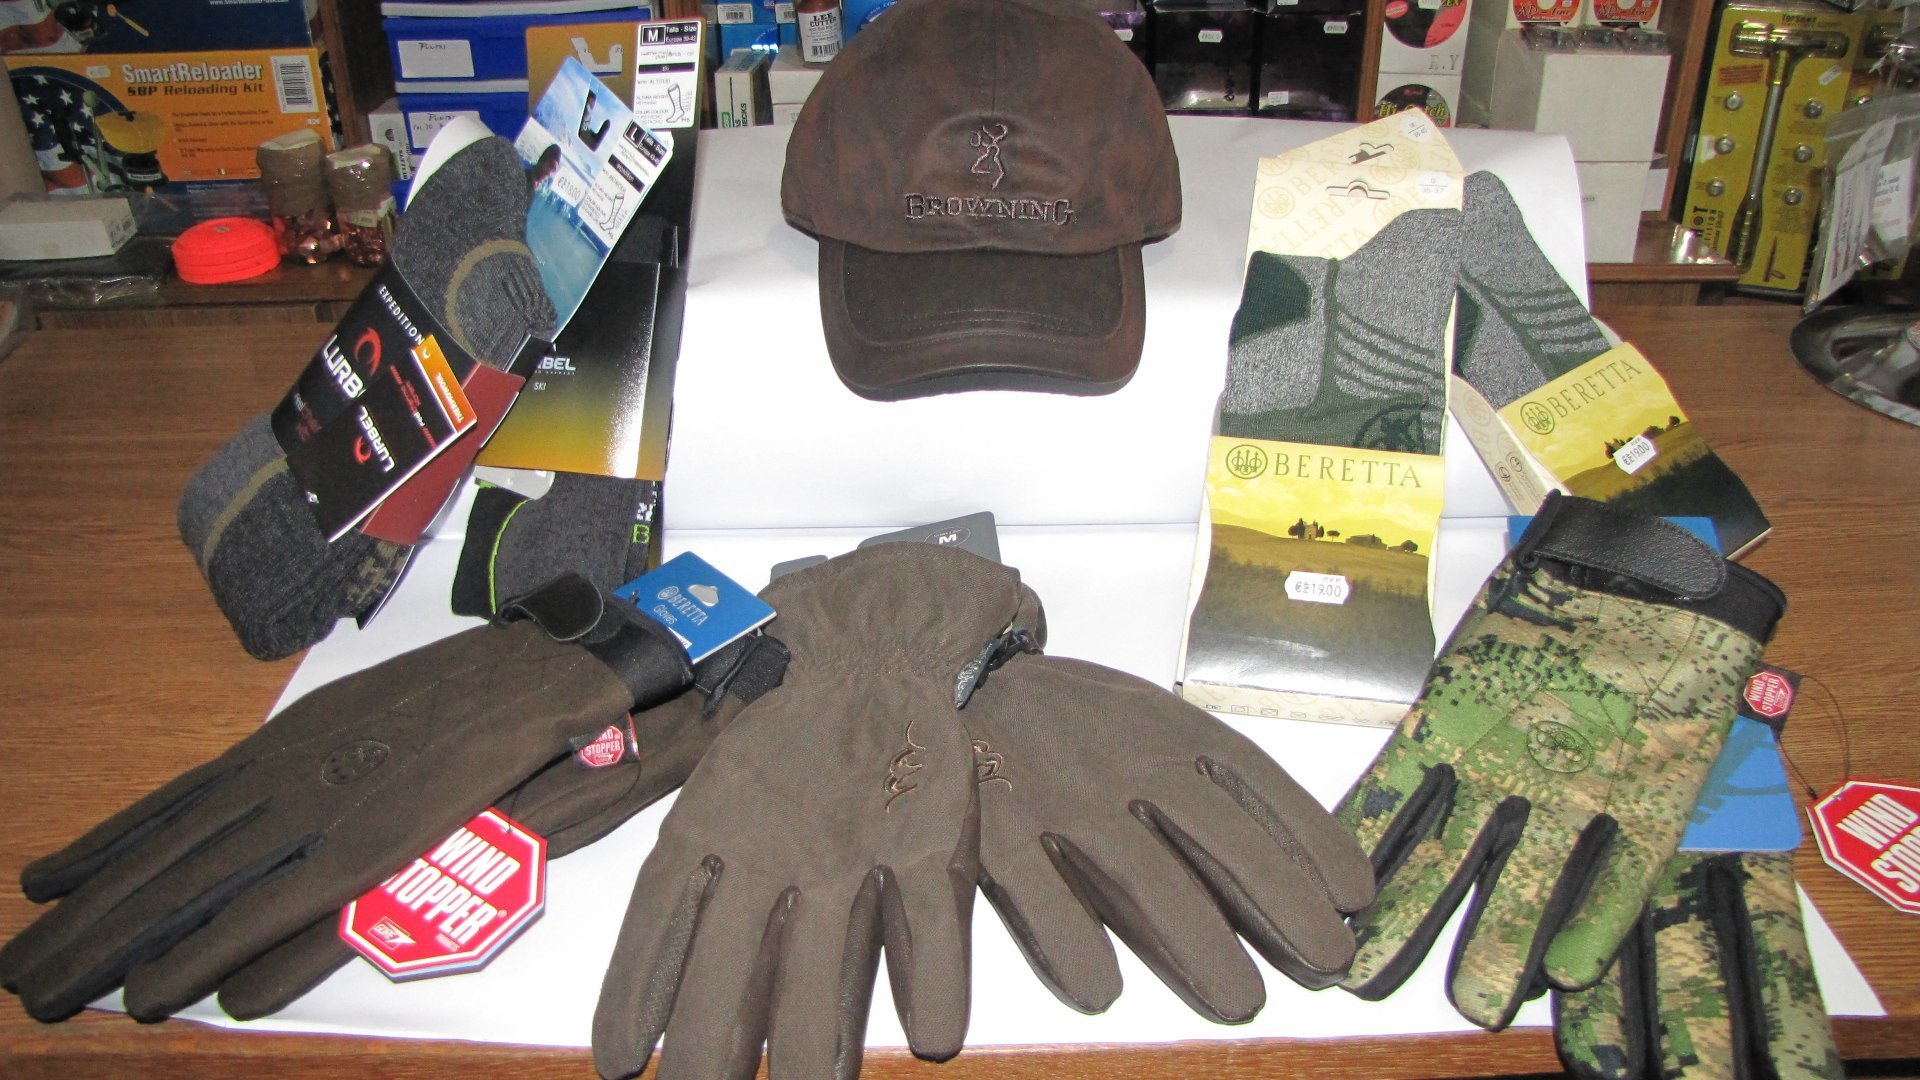 Complementos: Guantes, calcetines, gorras